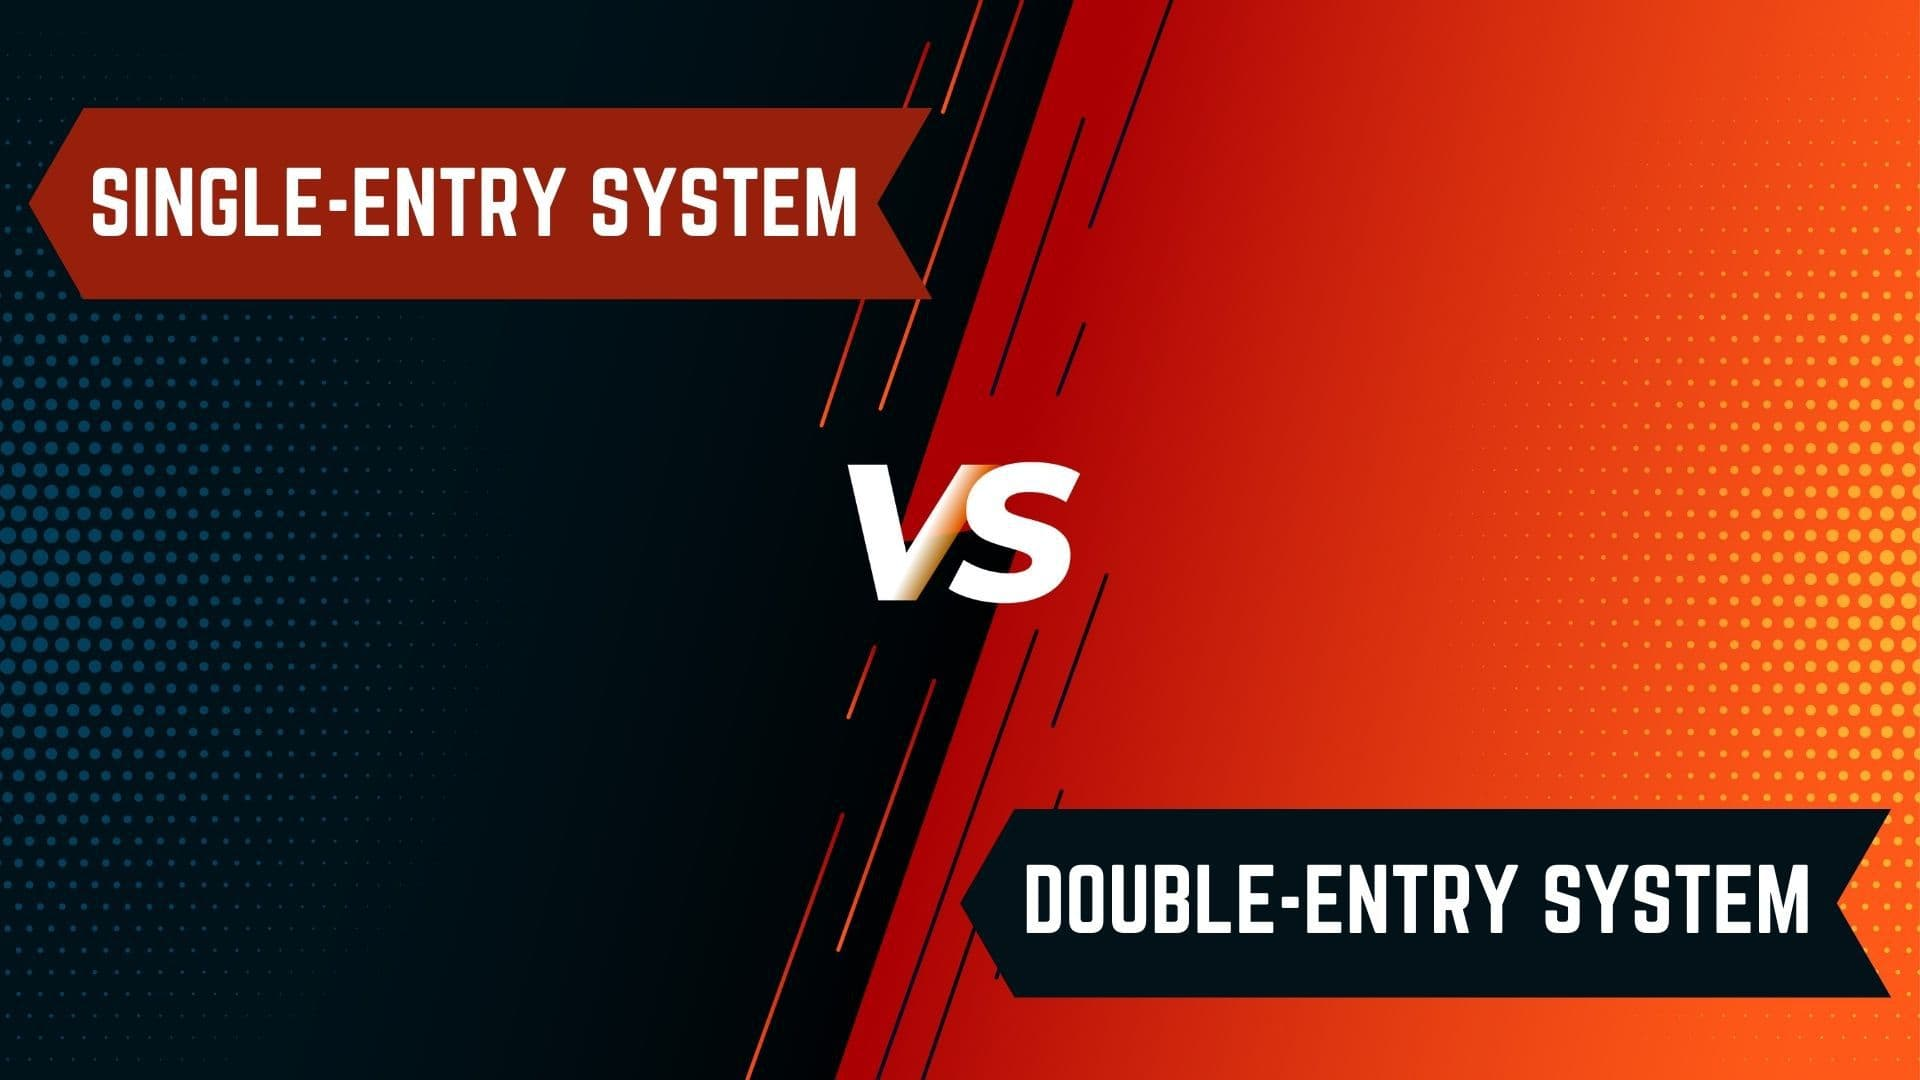 Single-Entry vs. Double-Entry - Which system is better